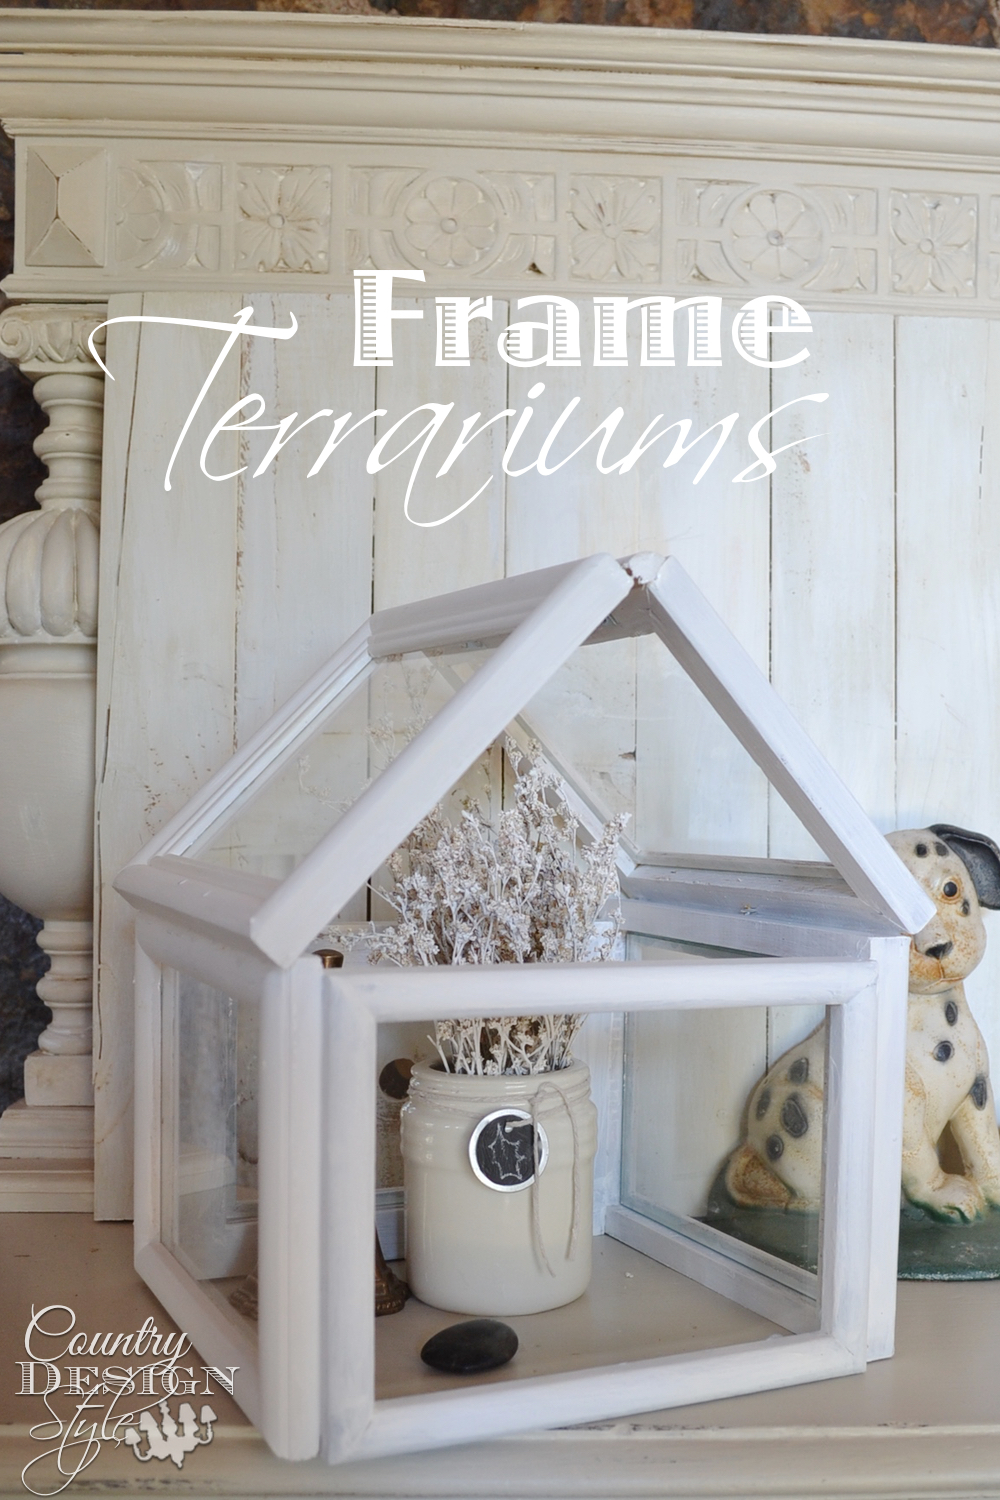 Easy step by step DIY how to make a terrarium using thrift store frames. Country Design Style